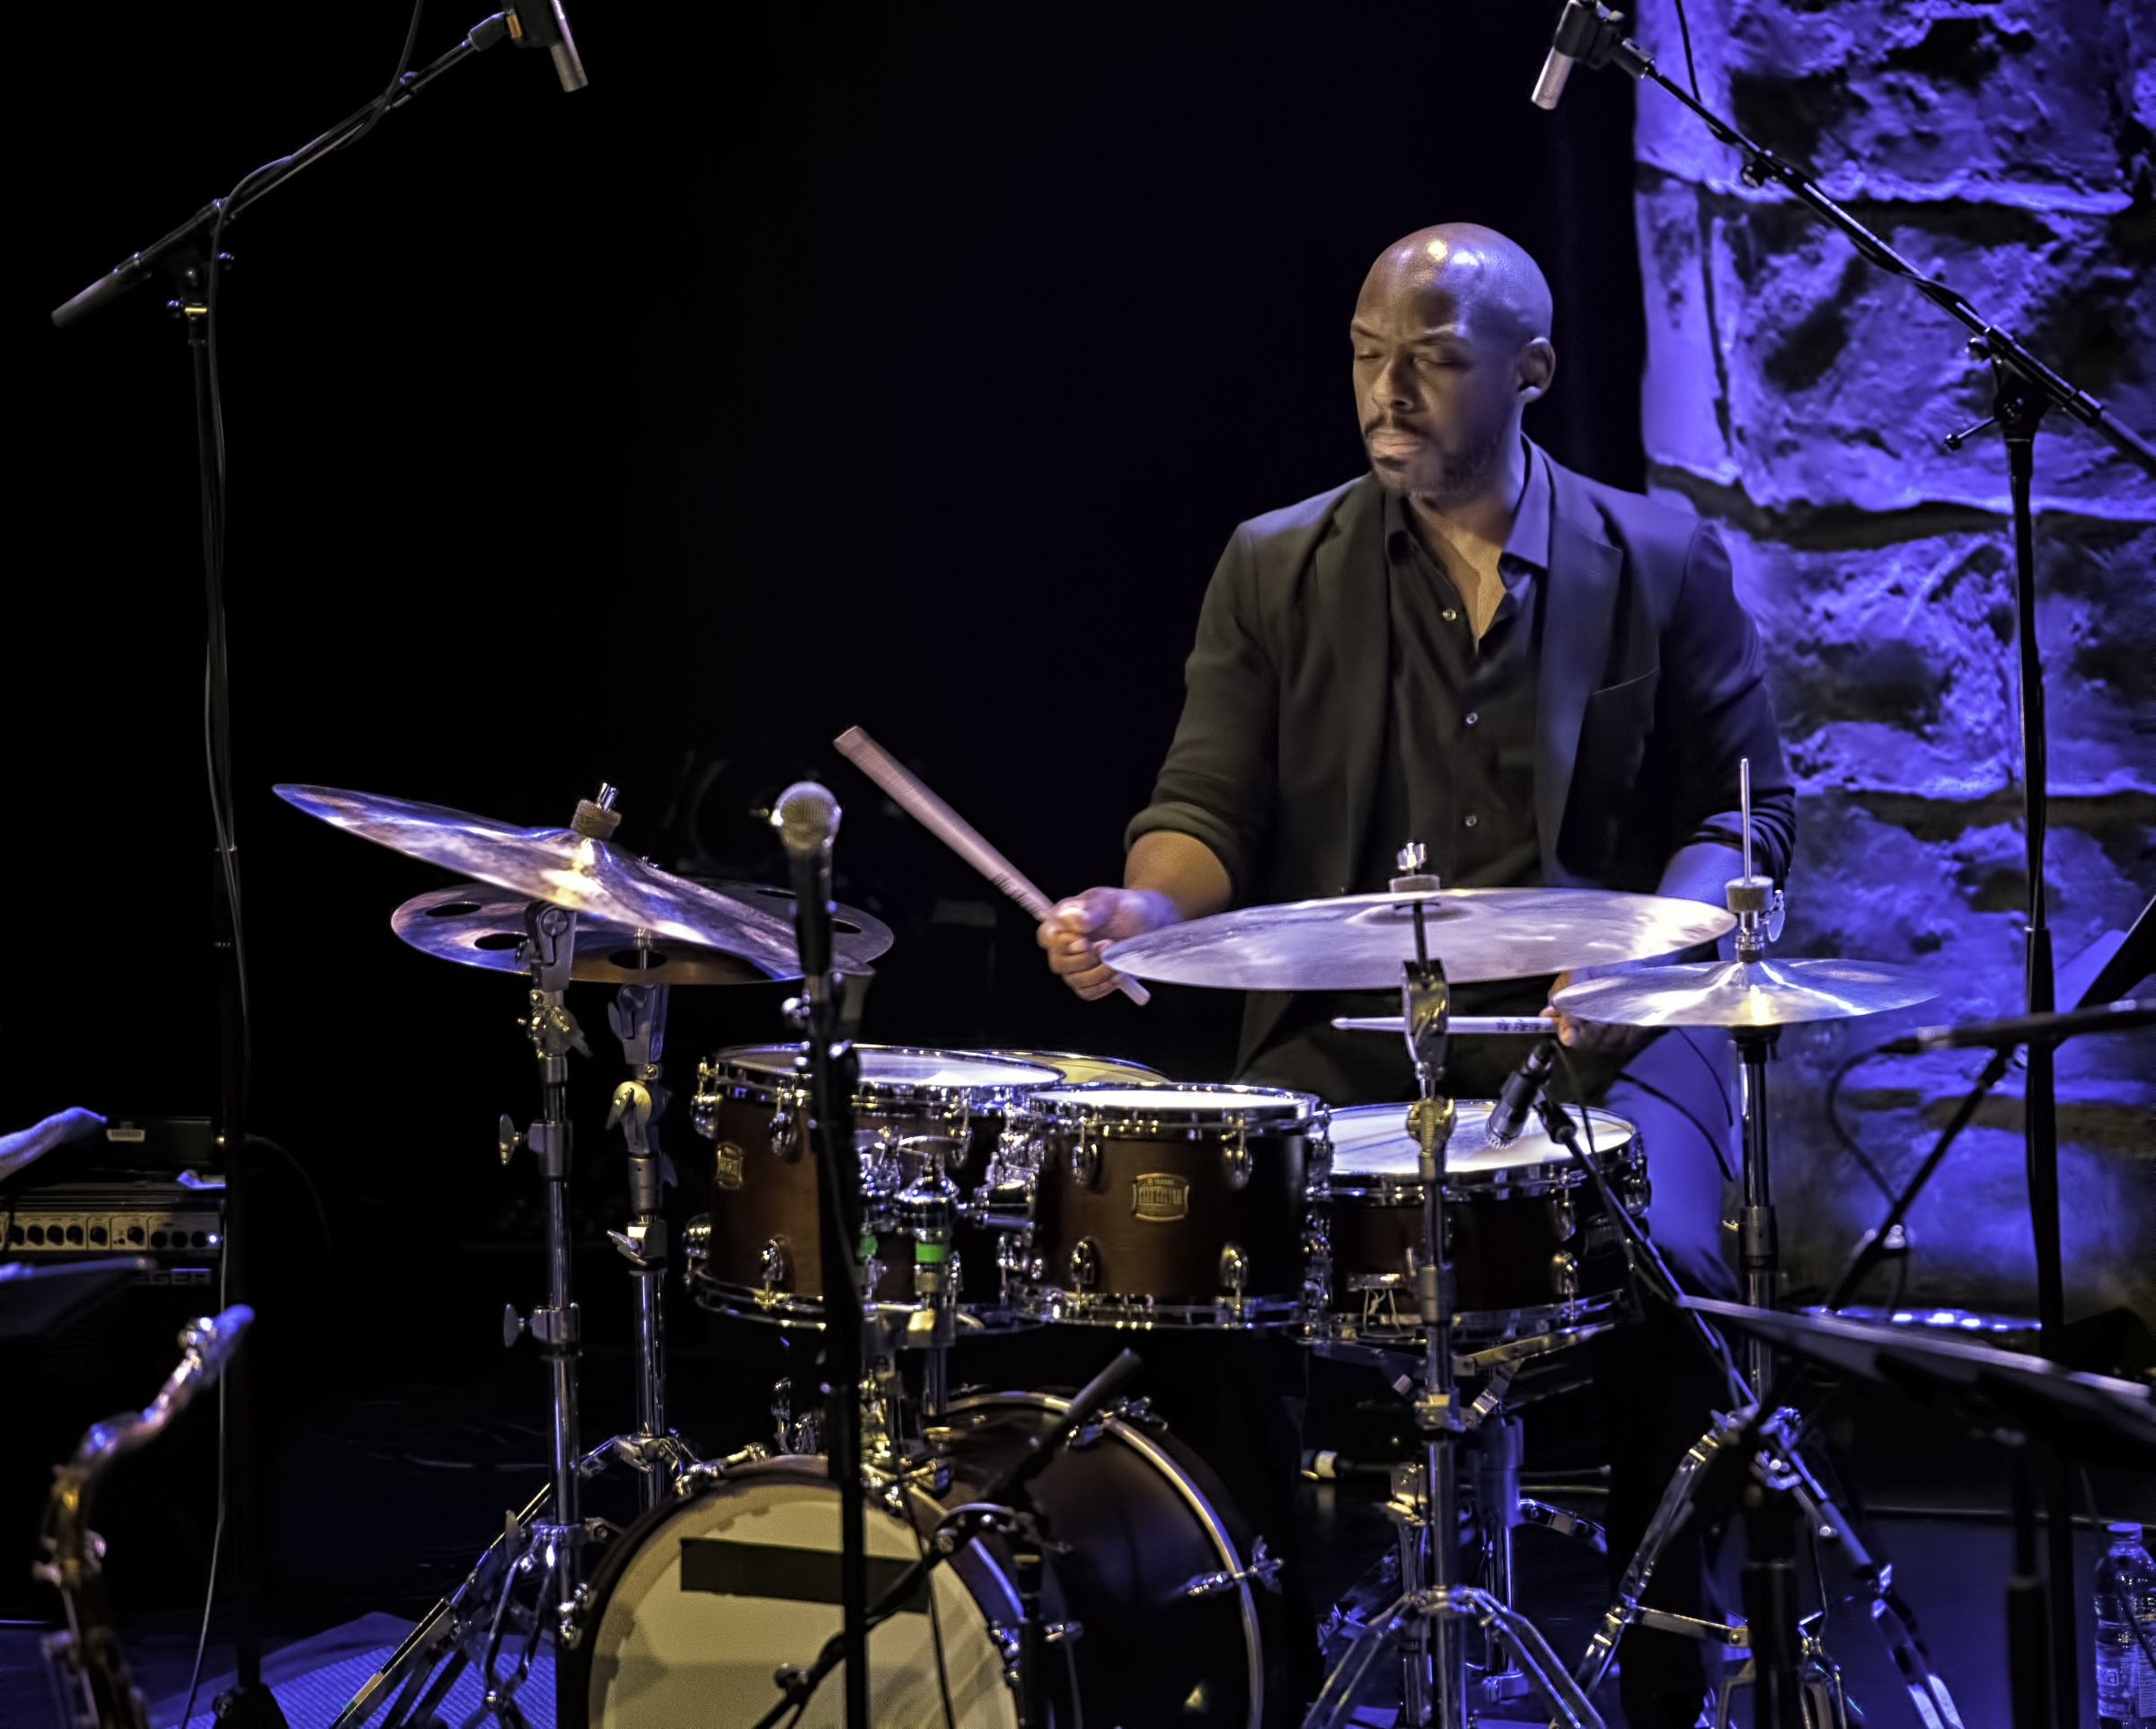 E.J. Strickland with Ravi Coltrane and the Void at The Montreal International Jazz Festival 2017